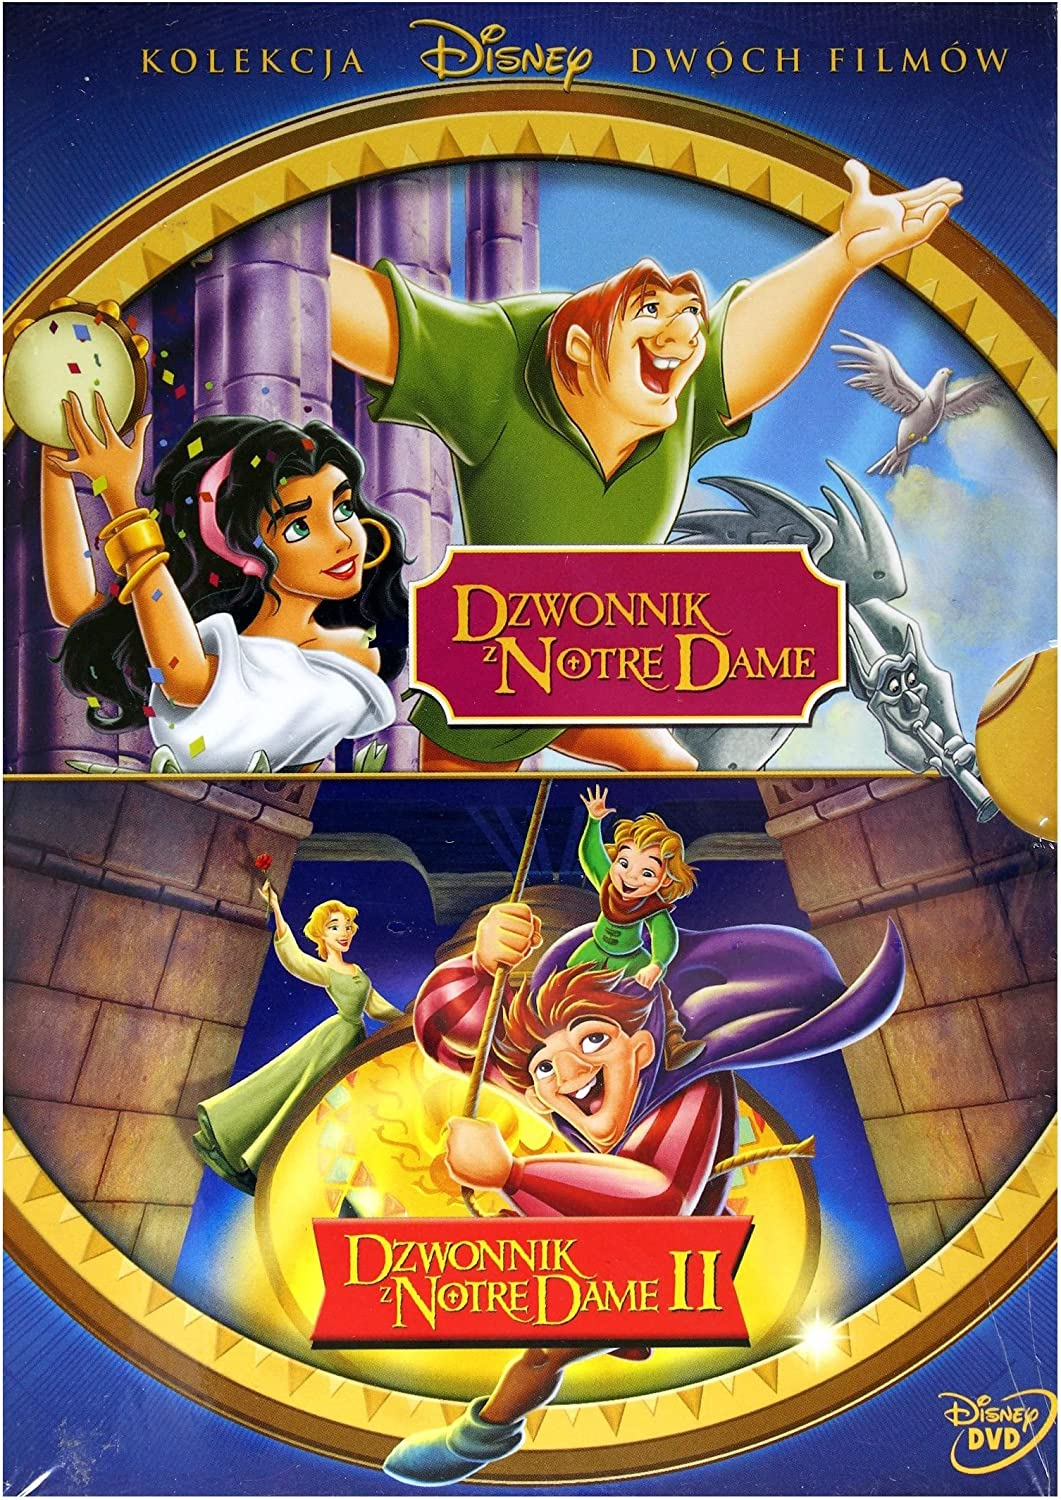 Dzwonnik Z Notre Dame Dzwonnik Z Notre Dame Ii Disney Box 2dvd No English Version Amazon Co Uk Michael Mckean Kevin Kline Mary Kay Bergman Jim Cummings Jennifer Love Hewitt Tom Hulce Jason